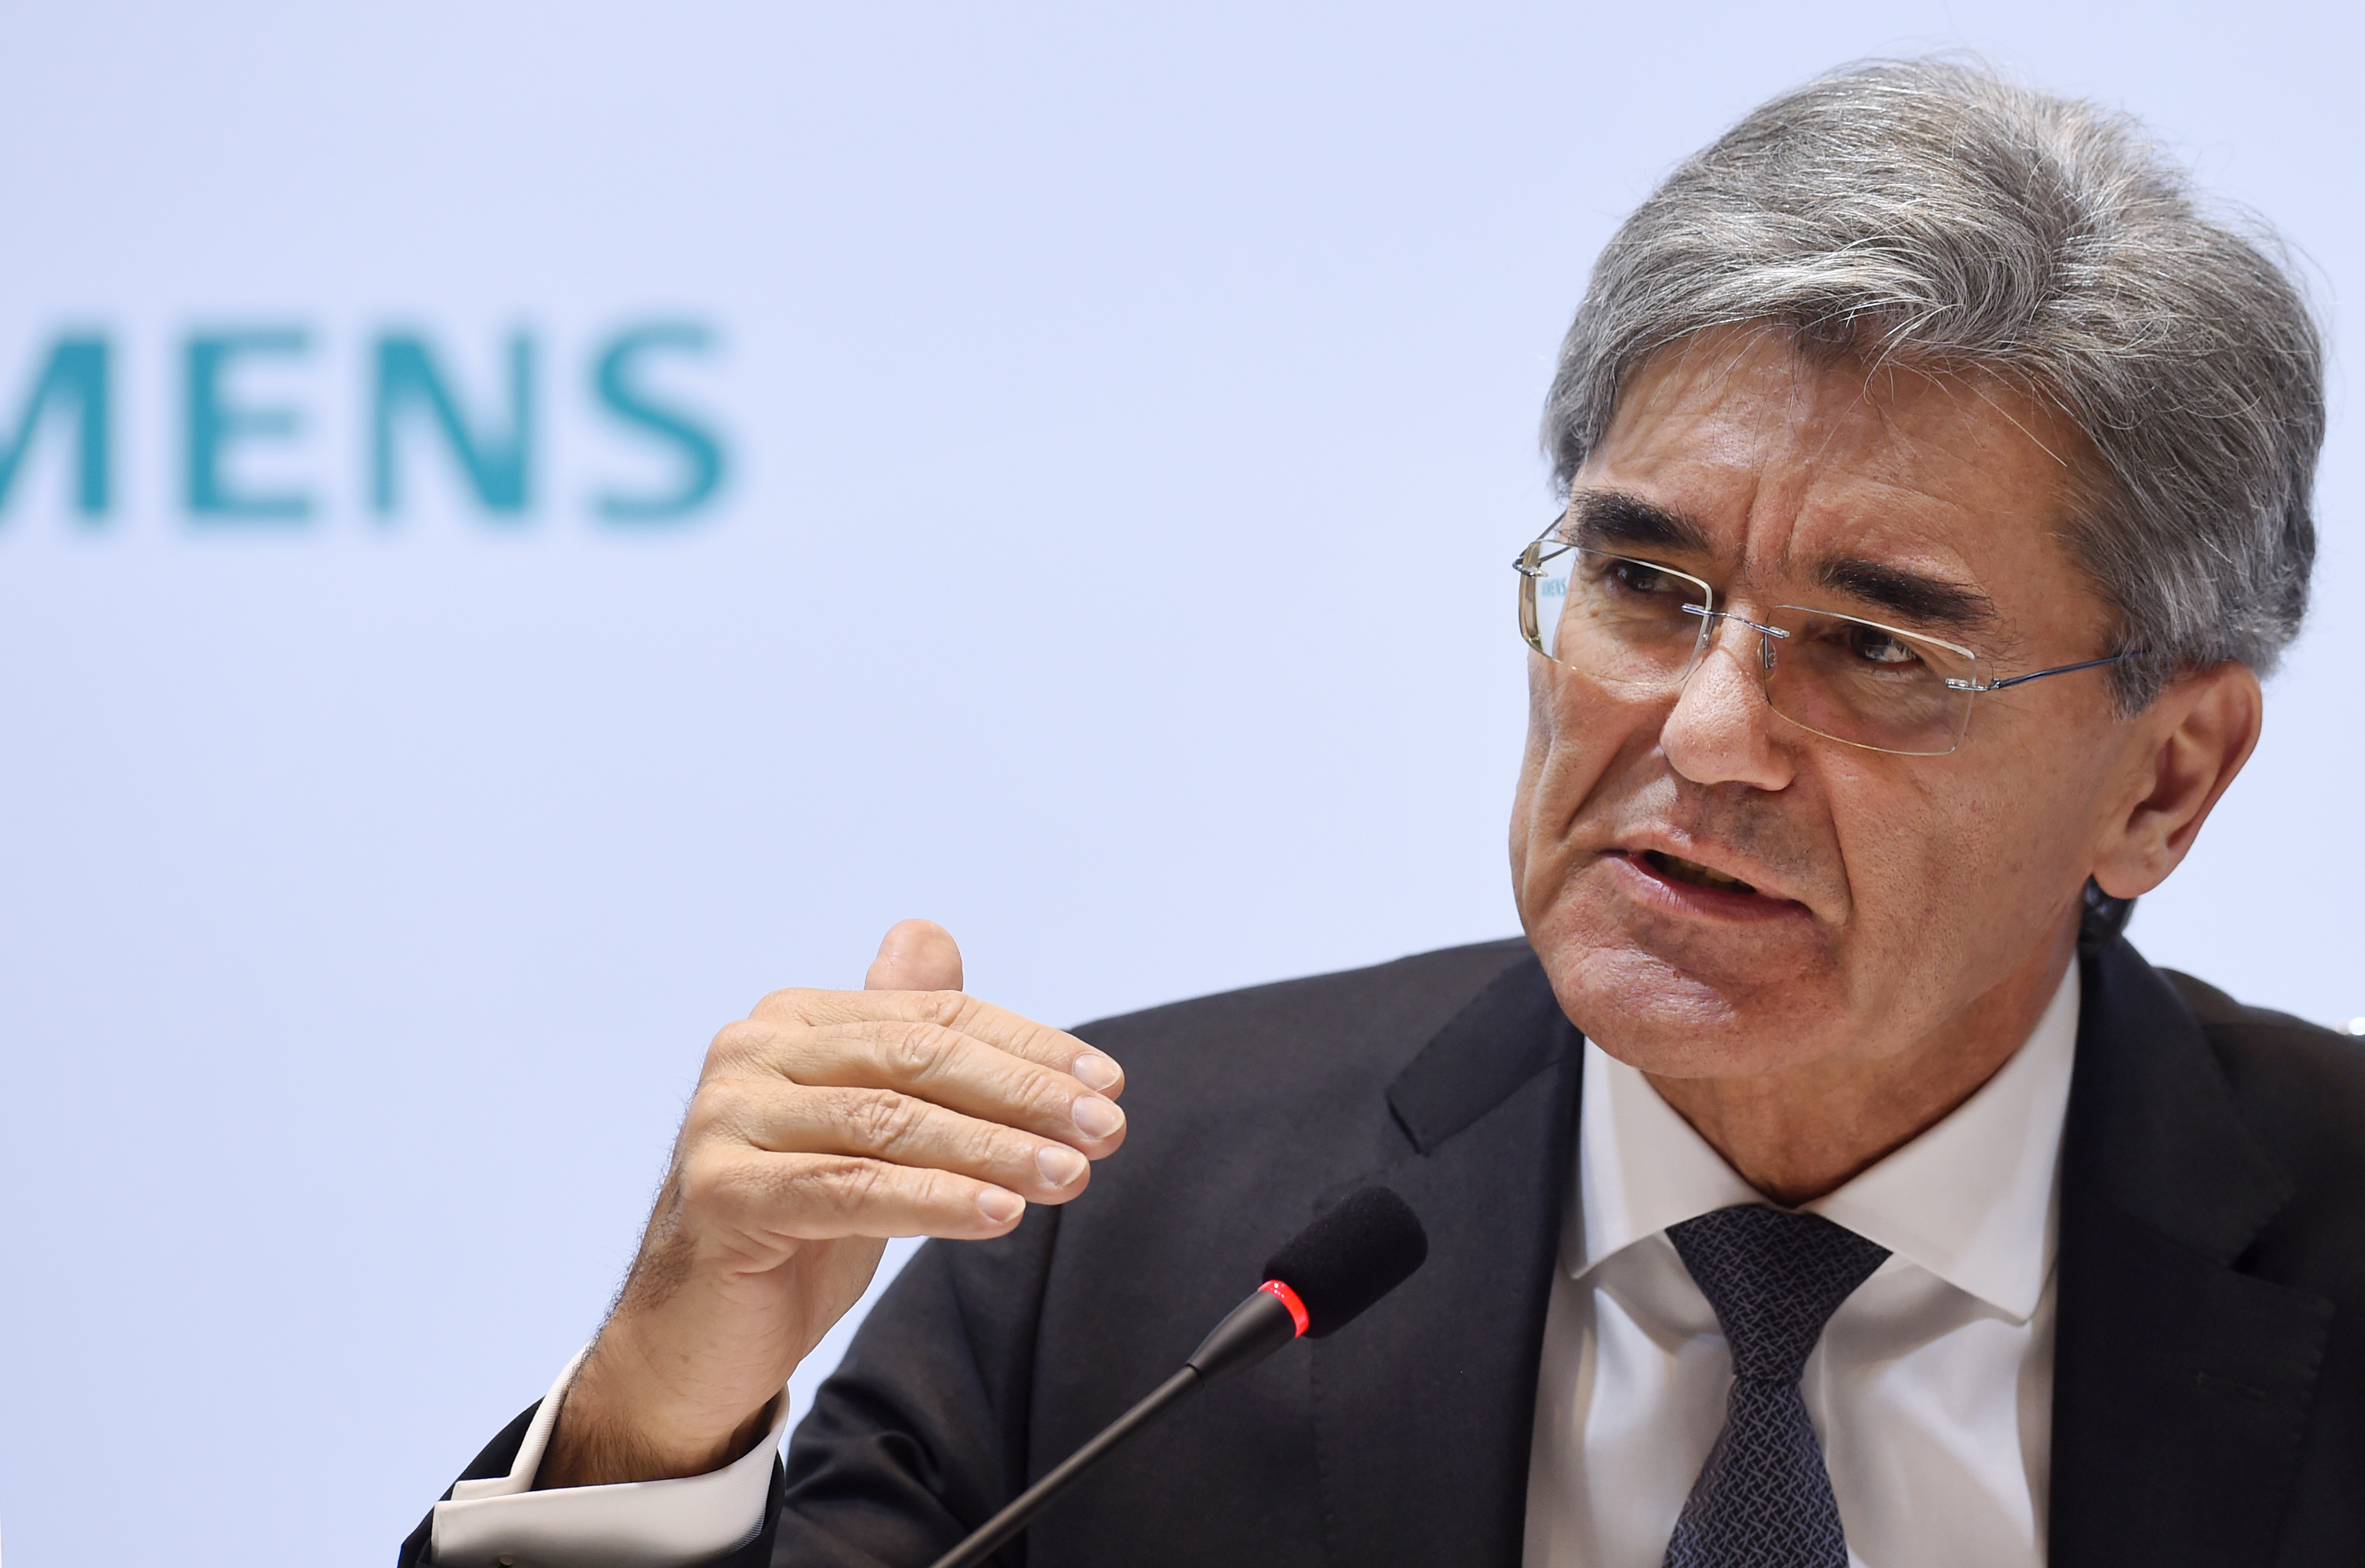 Joe Kaeser, CEO of German industrial giant Siemens, attends the annual results press conference in Munich, southern Germany, on November 10, 2016.